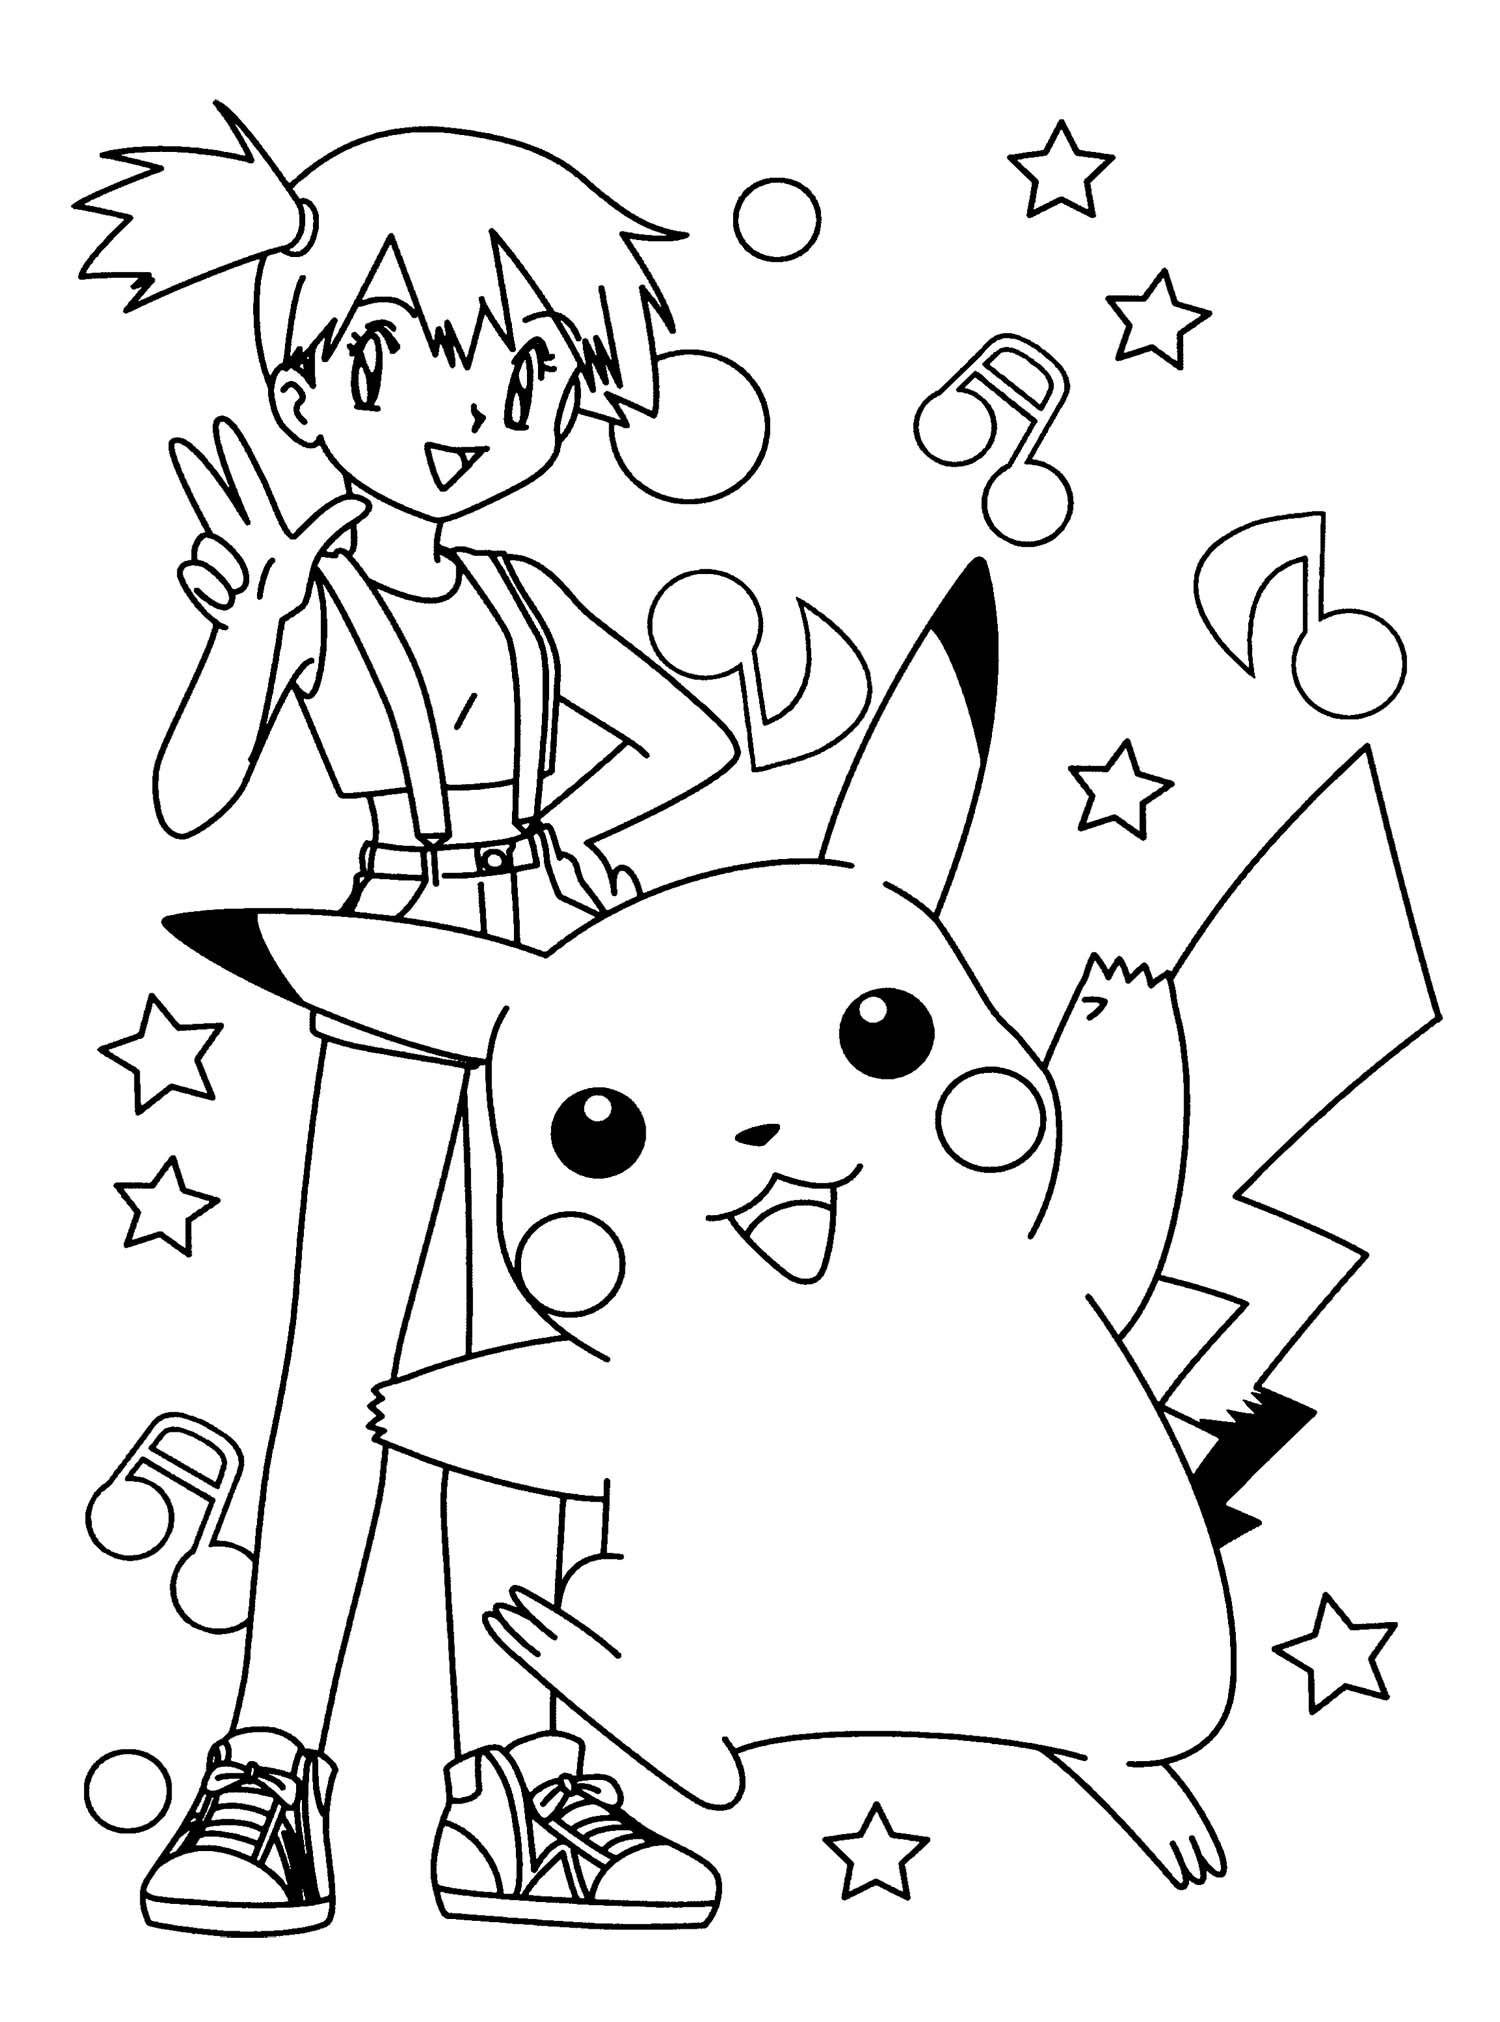 Misty And Pikachu Coloring Page Pokemon para colorir